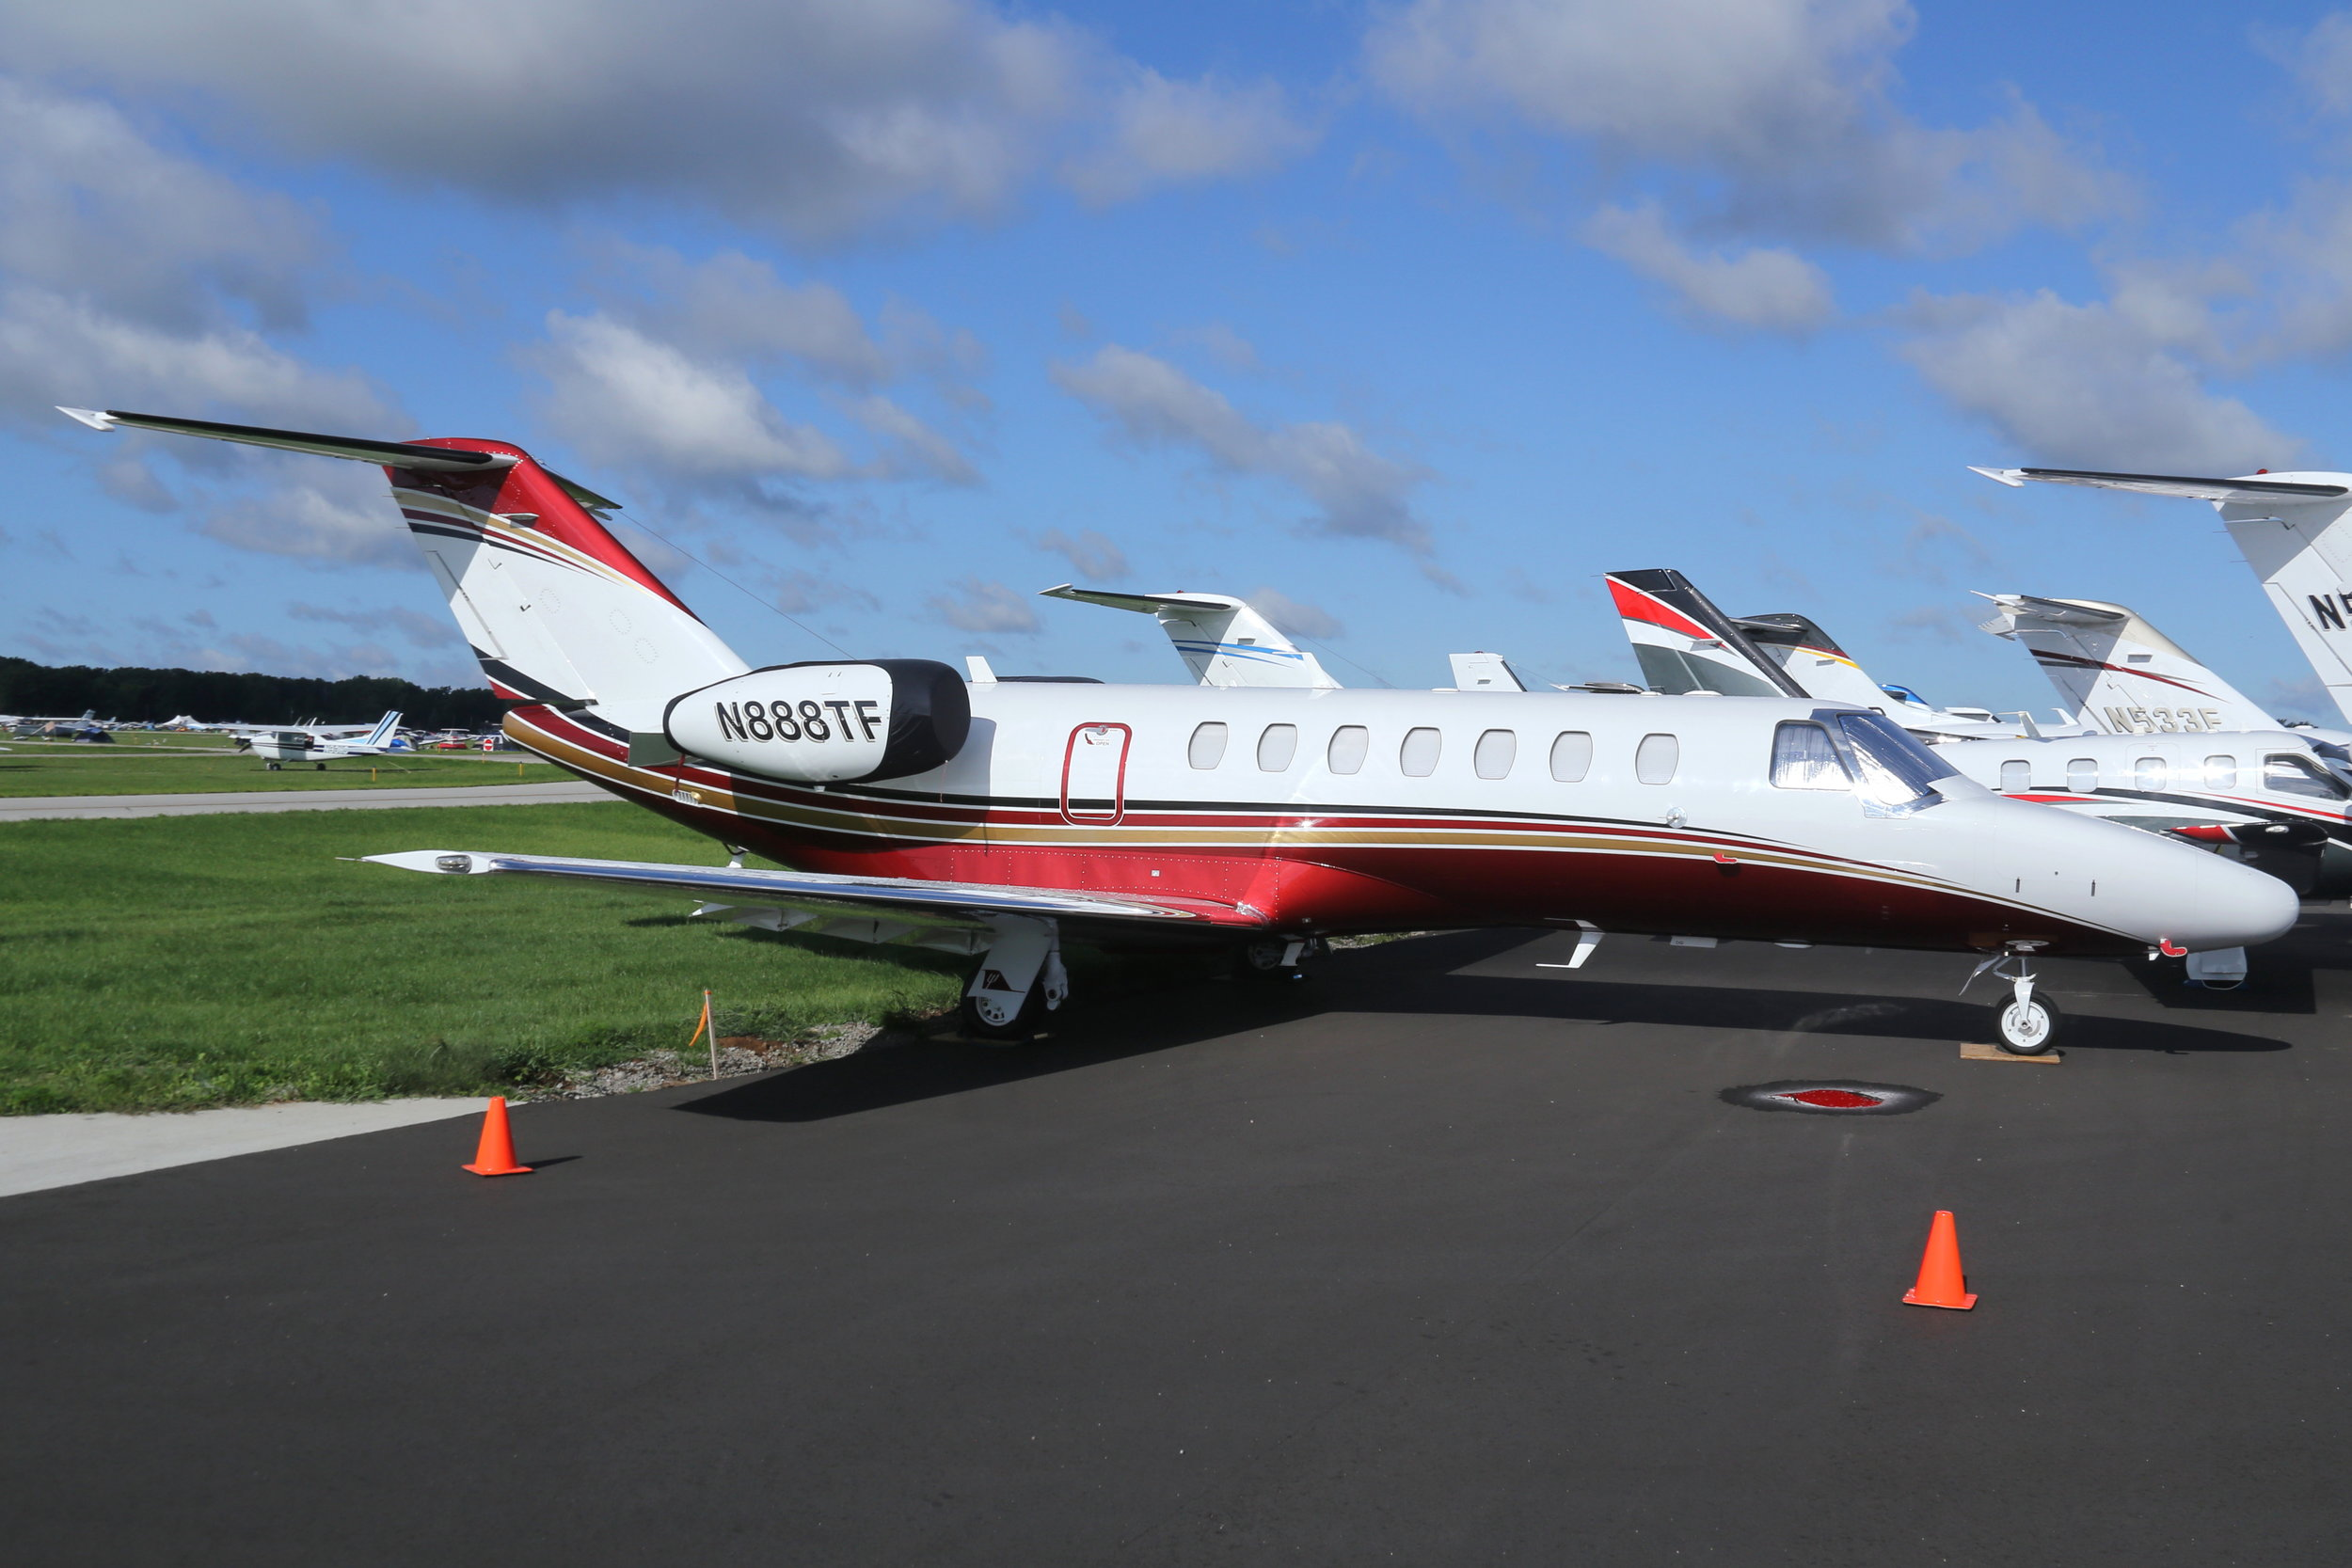 N888TF Mustang Leasing Co. Cessna 510 Mustang taken at Whitman Regional Airport 26th July by John Wood